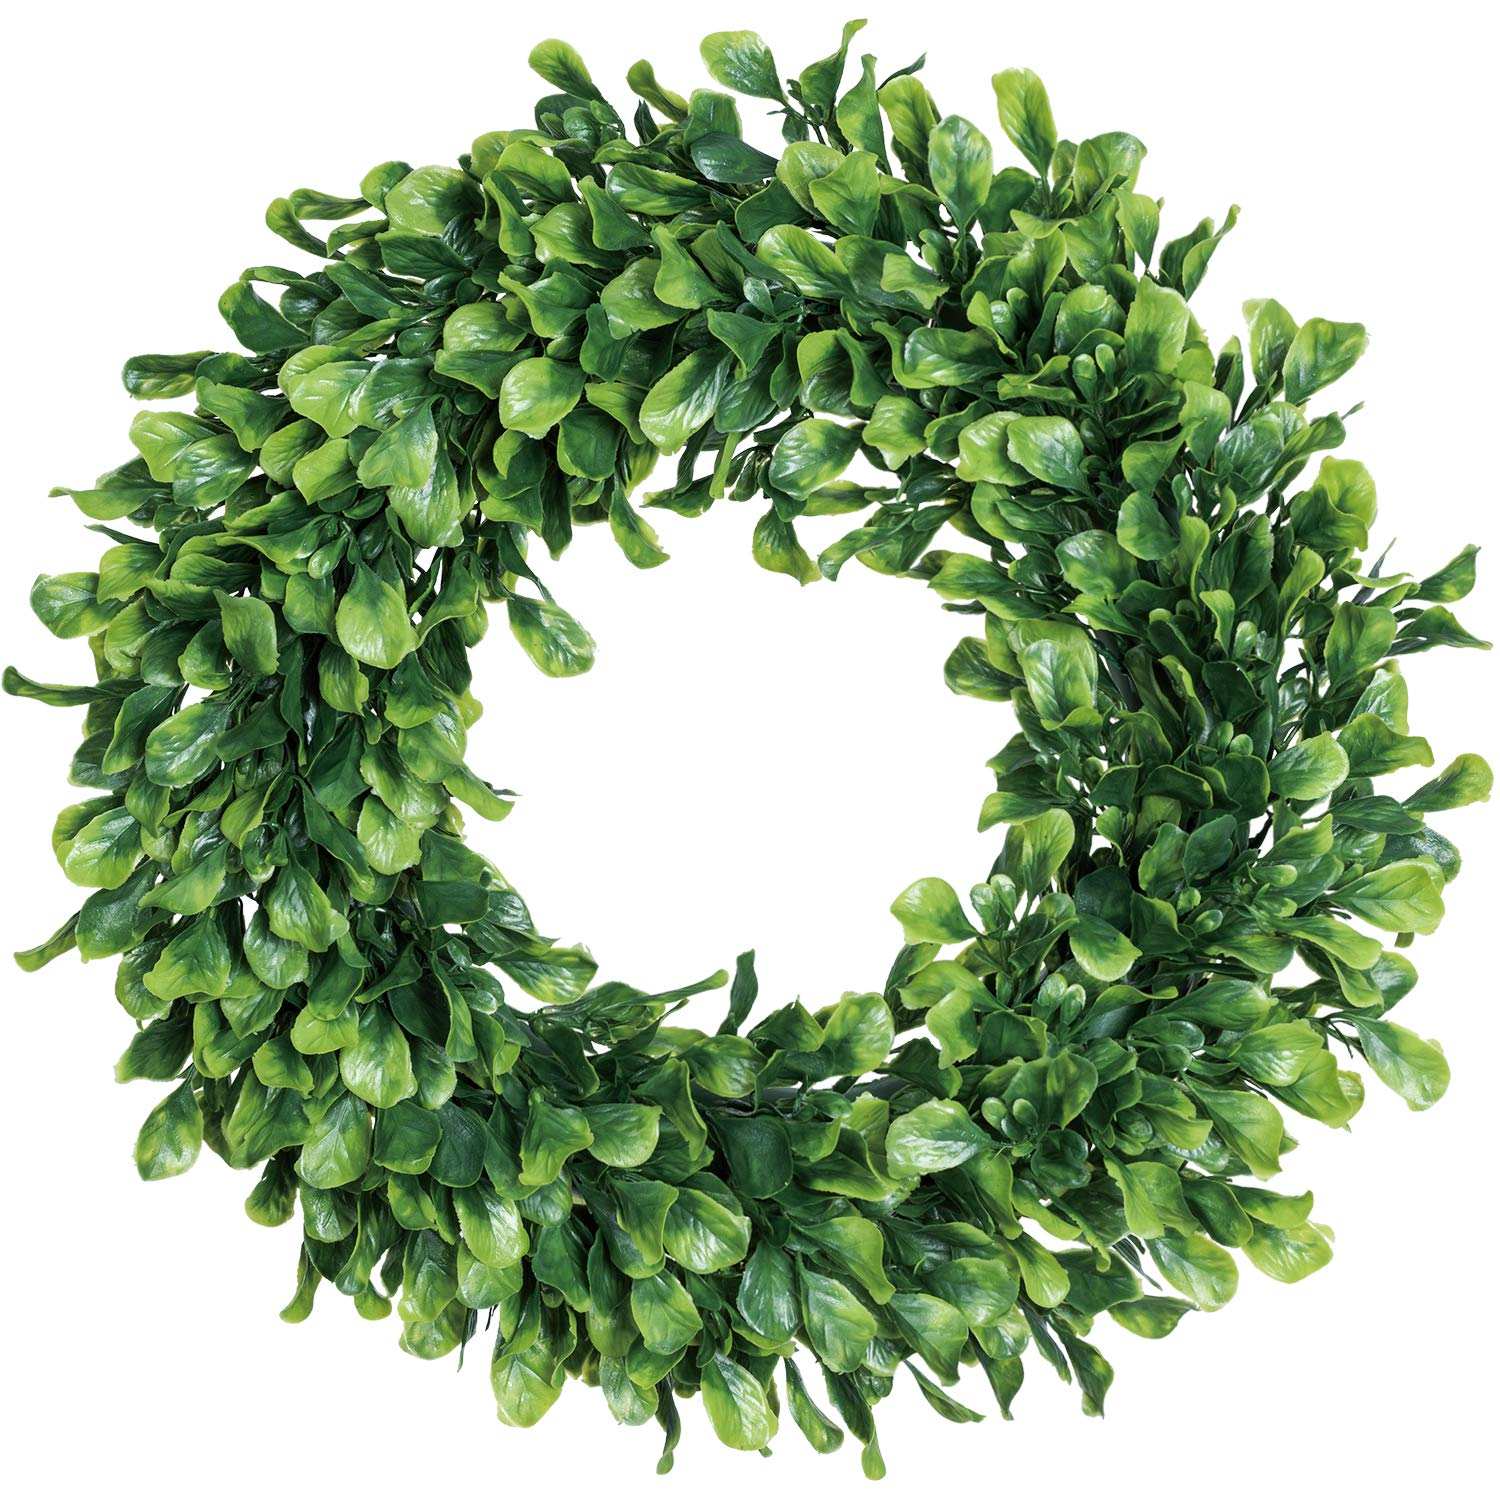 Lvydec Artificial Green Leaves Wreath - 15'' Boxwood Wreath Outdoor Green Wreath for Front Door Wall Window Party Décor by Lvydec